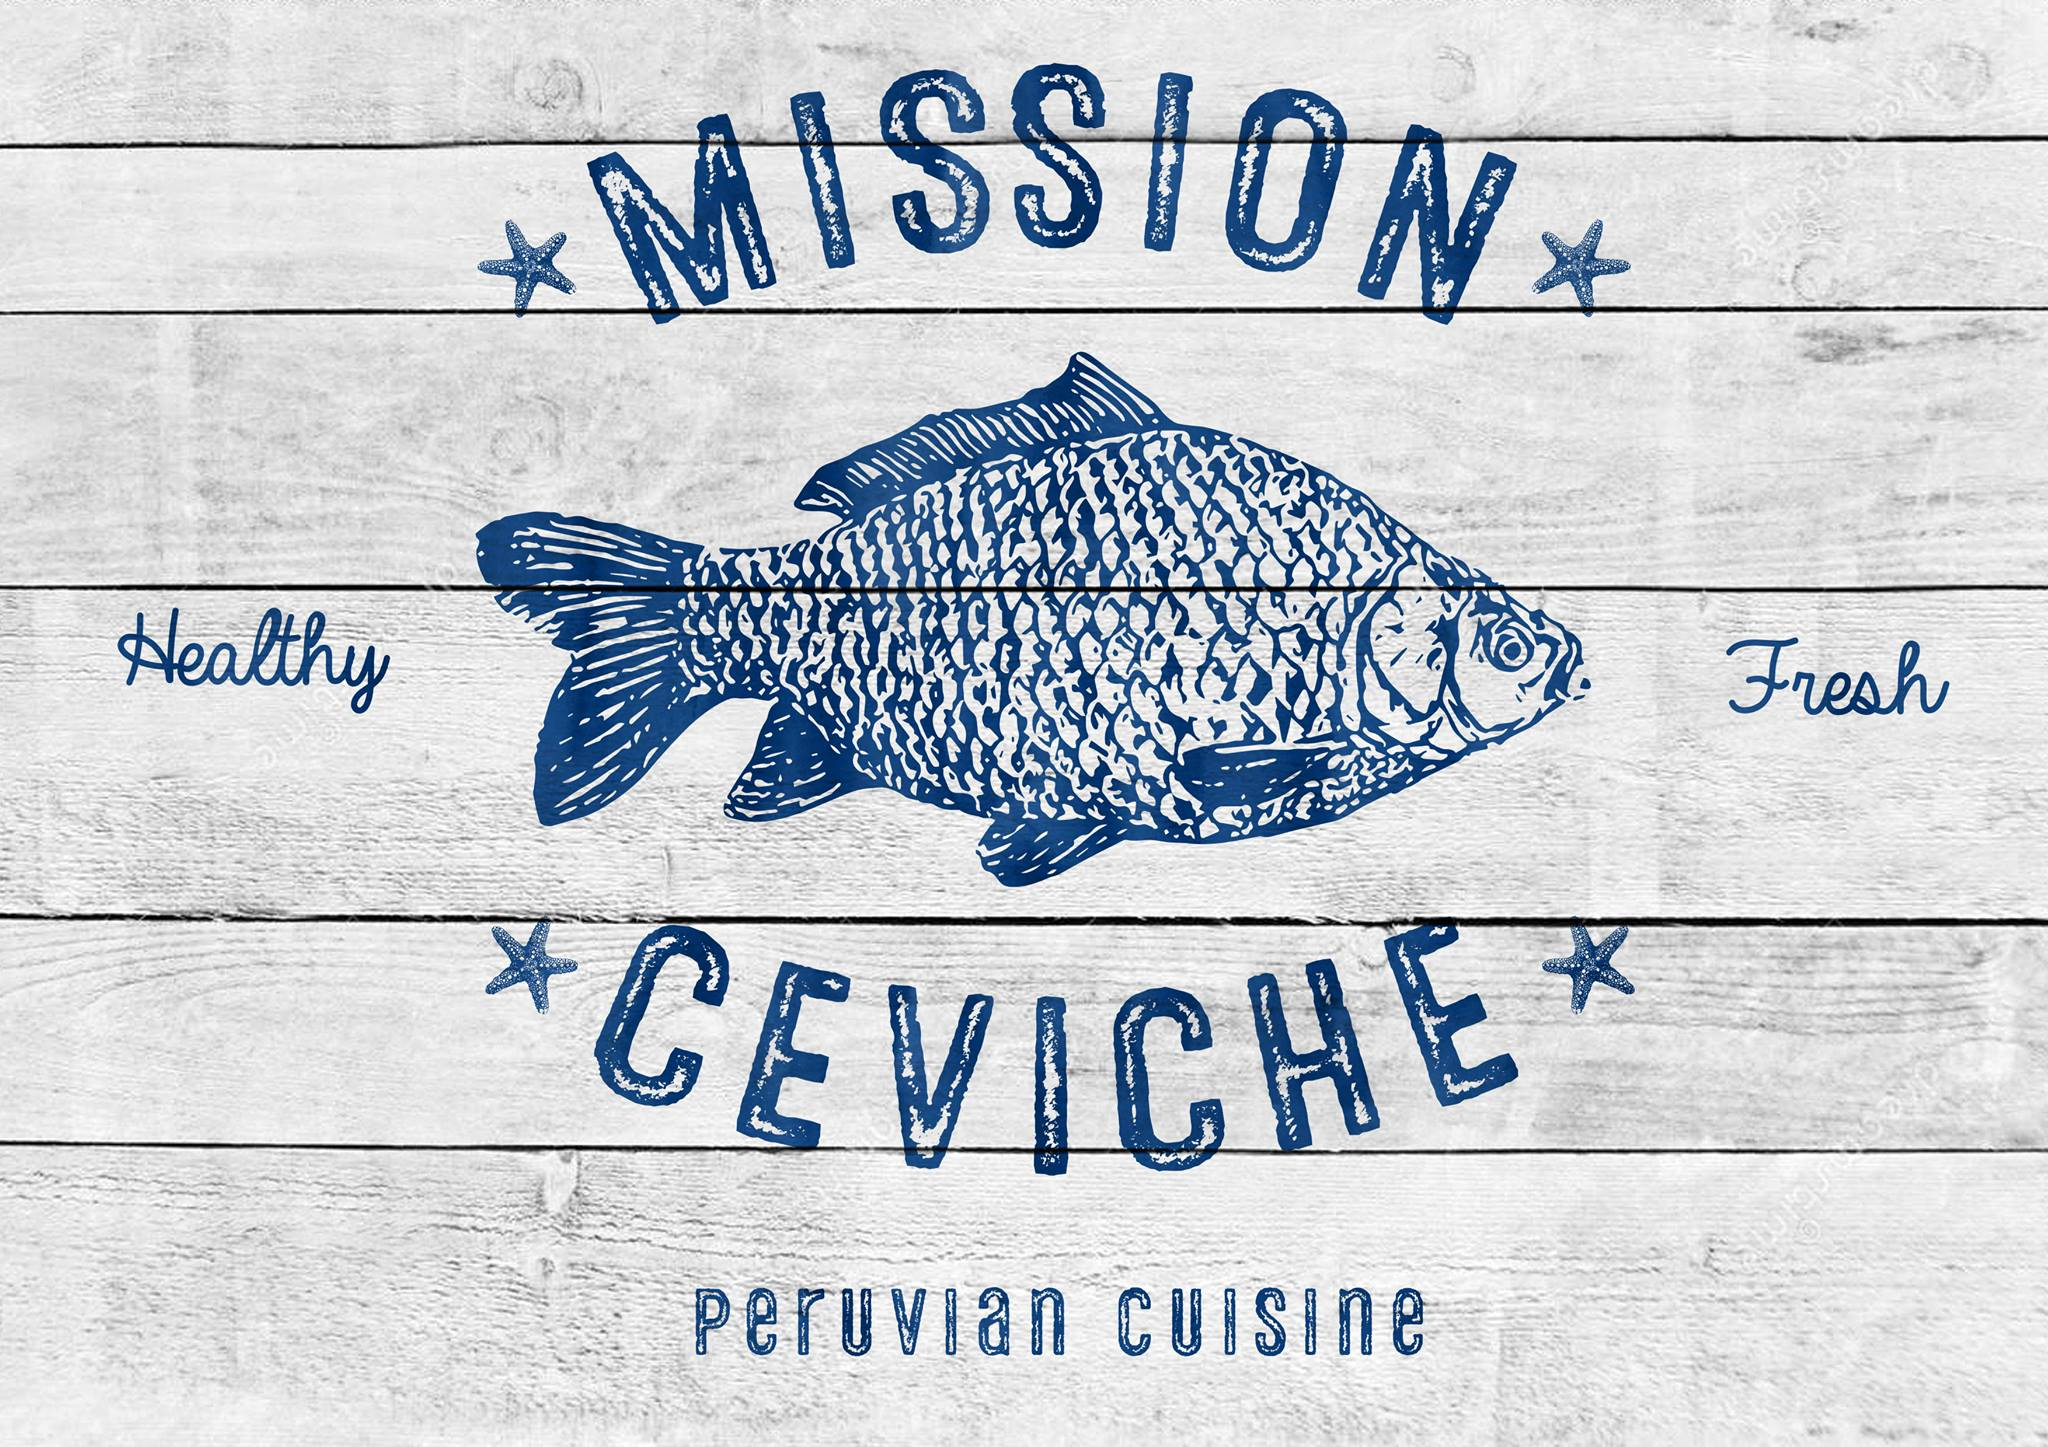 Mission Ceviche restaurant, located in the Meatpacking District of New York City, celebrates Peruvian culture and community through food. Mission Ceviche connects people, culture and diversity to New York food markets.